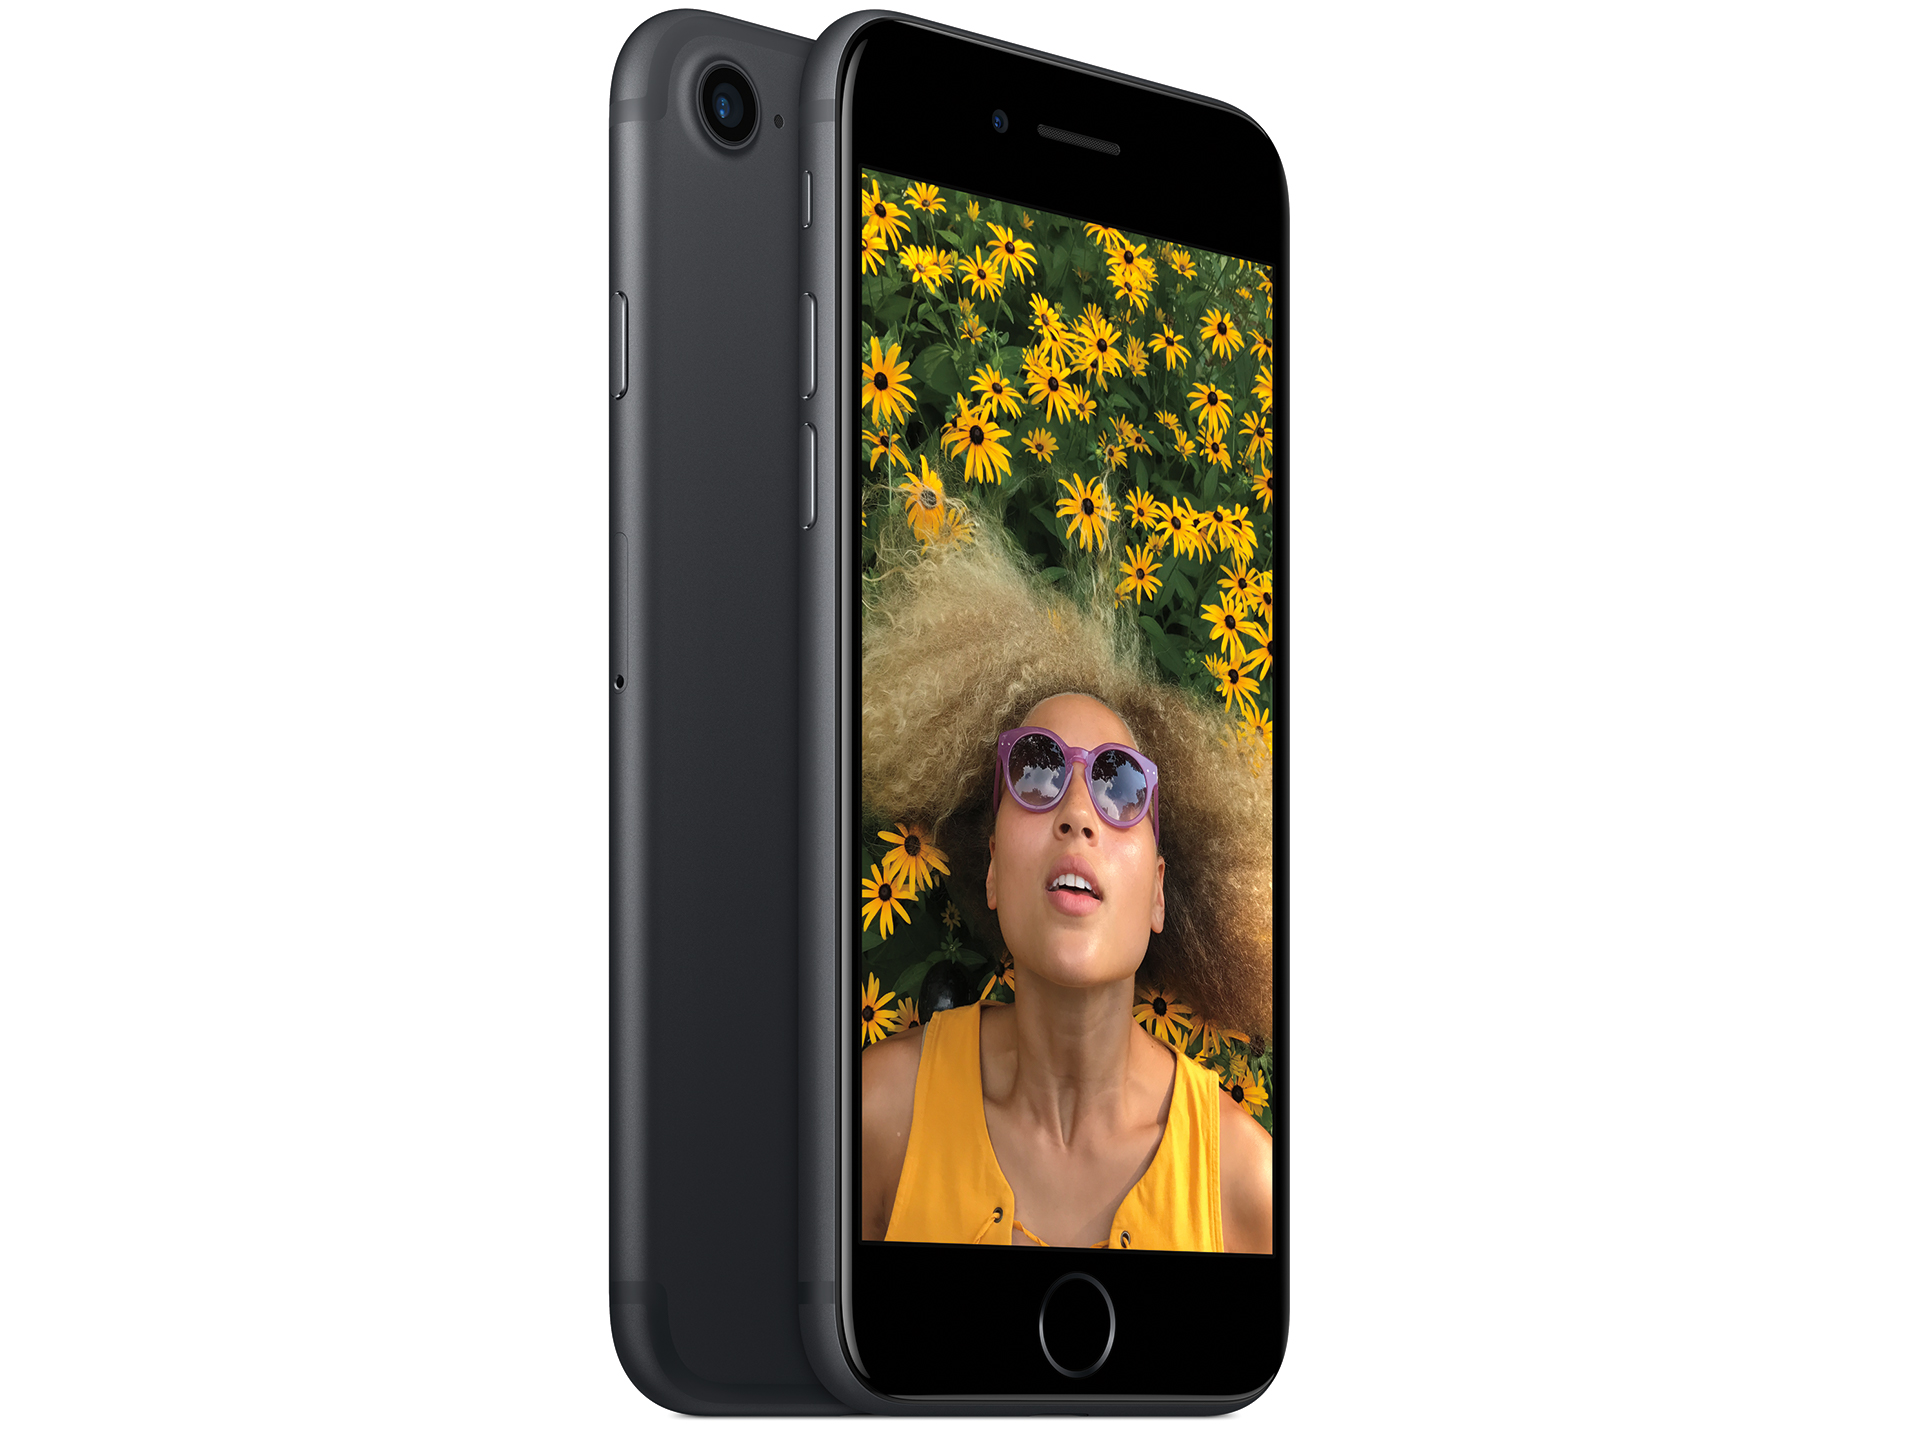 Apple Iphone 7 Smartphone Review Reviews 128 Gb Jetblack